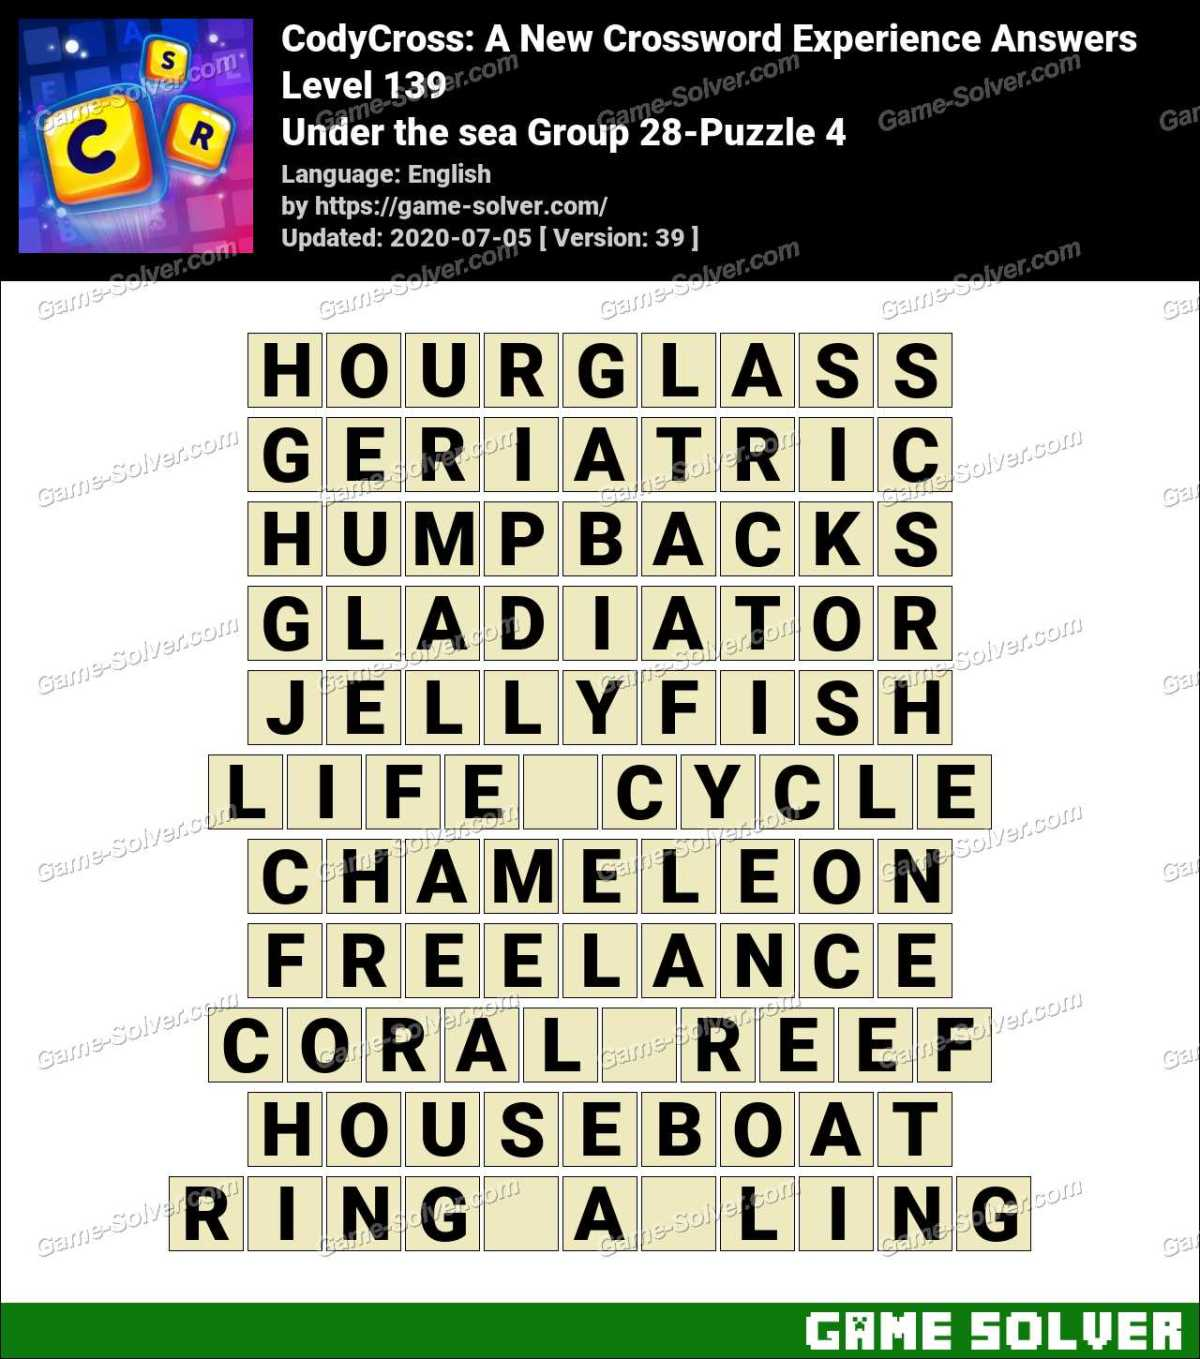 CodyCross Under the sea Group 28-Puzzle 4 Answers